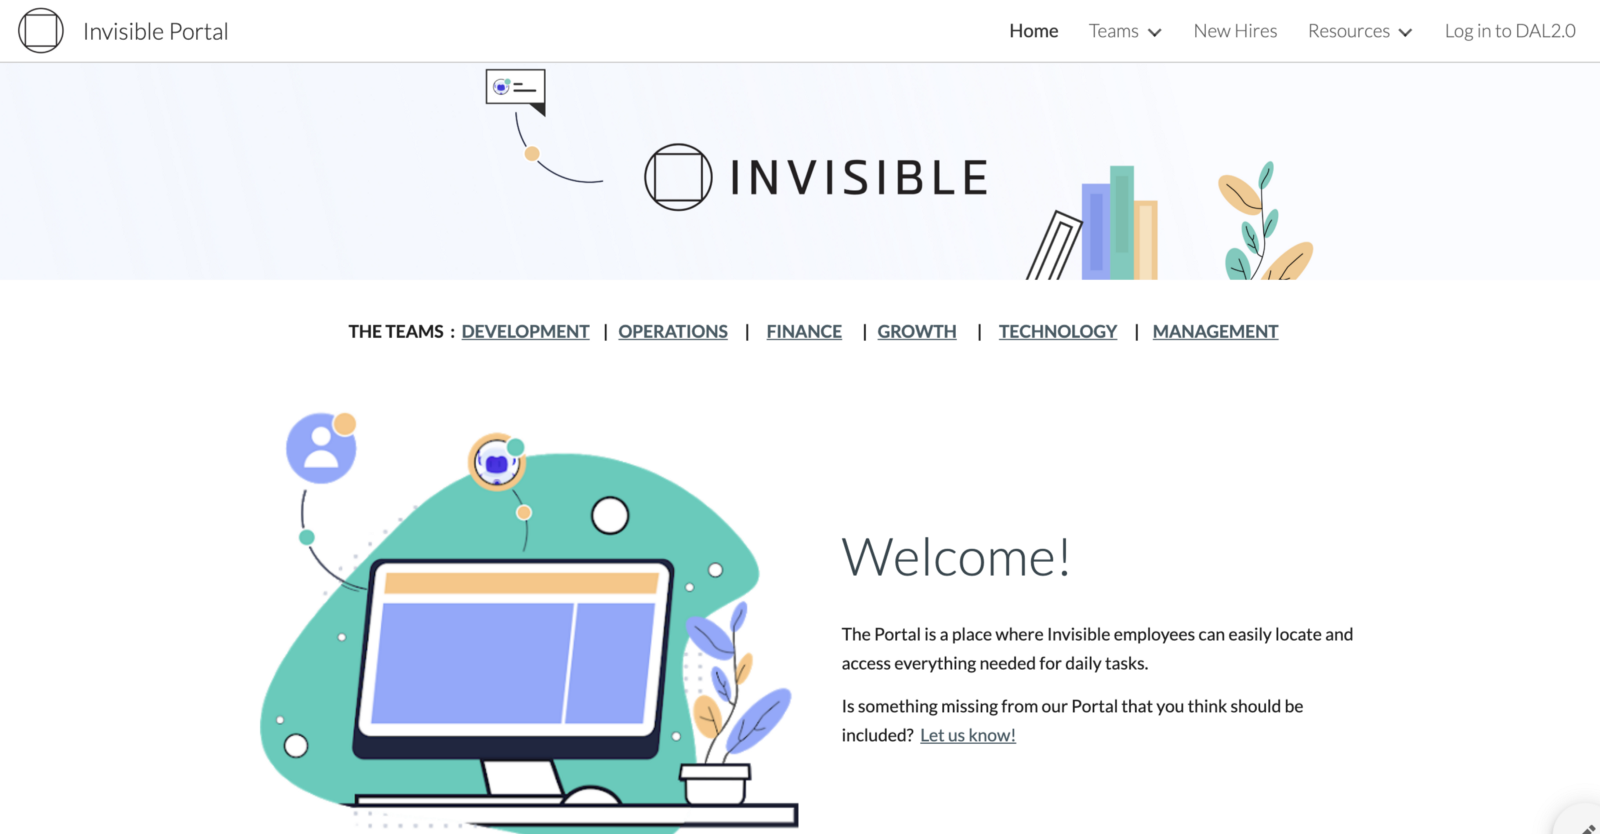 Dealing With Invisible Learning >> Training Report Week Of 17 May 2019 Invisible Reports Medium